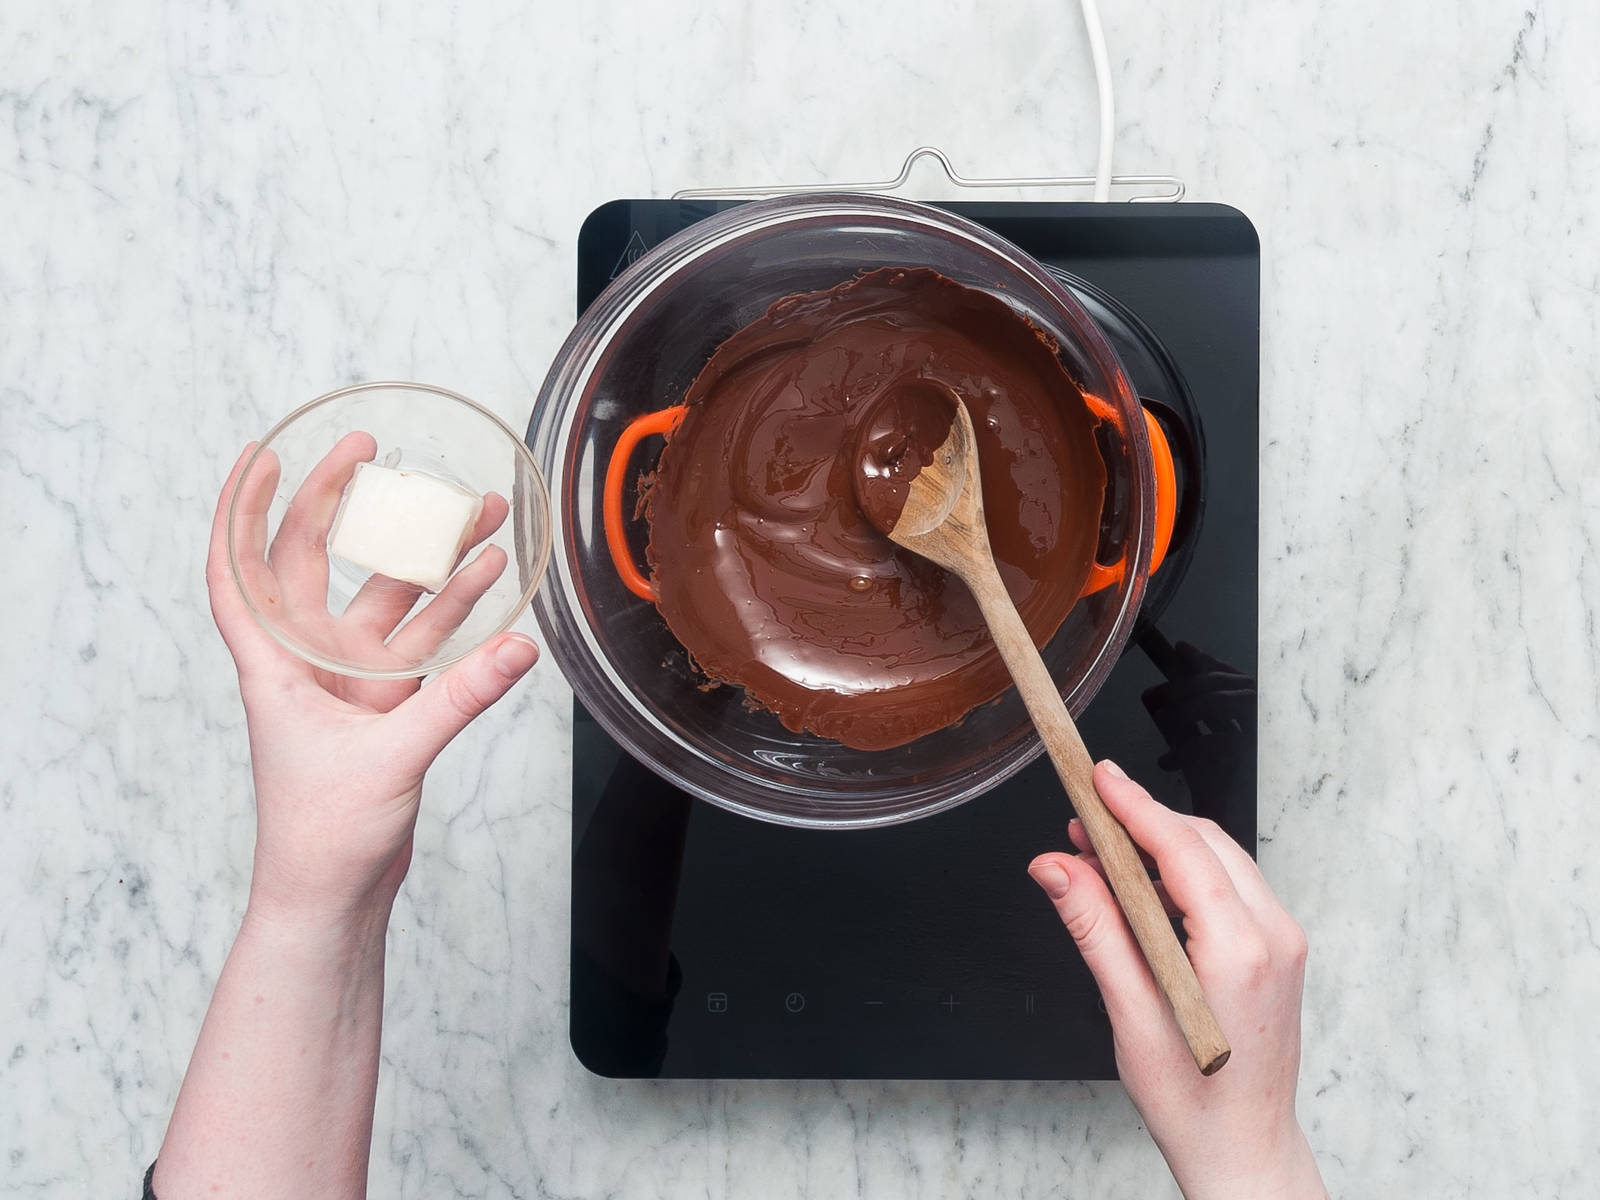 Chop chocolate. Set up a double boiler by placing a heat-proof bowl over a saucepan of simmering water. Melt chopped chocolate in heat-proof bowl and stir in coconut oil. Remove from heat and let cool until lukewarm.